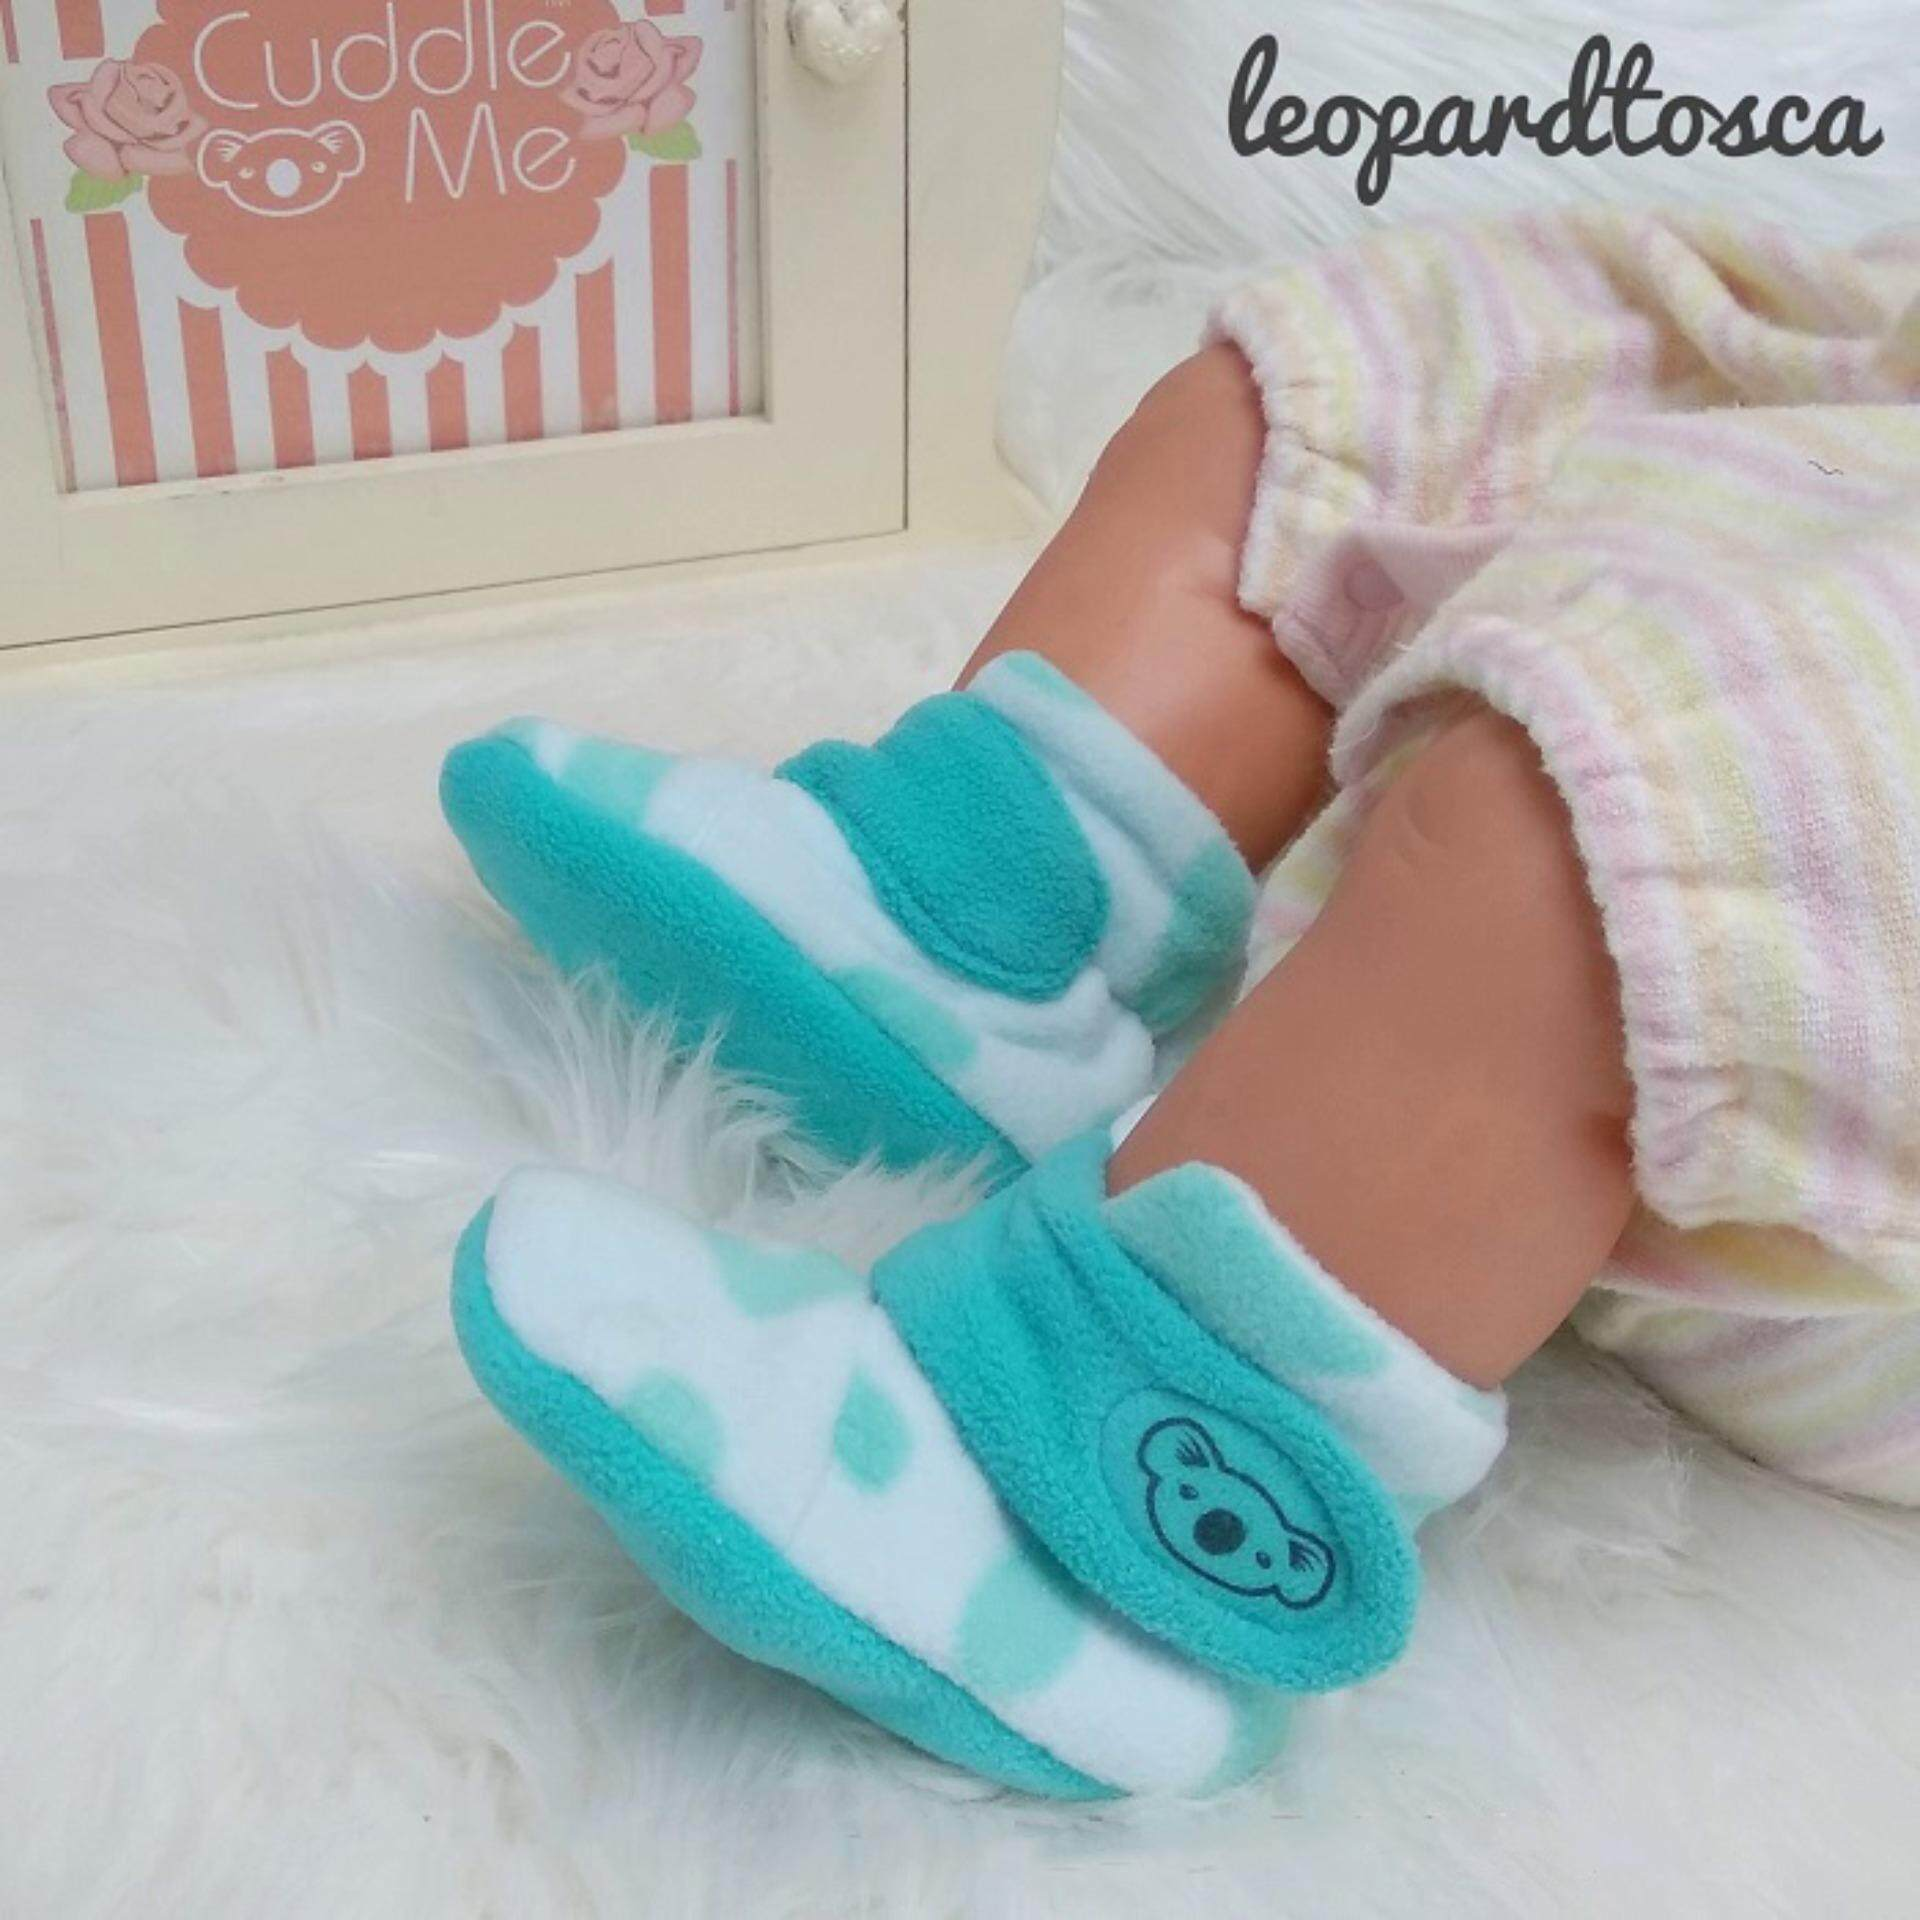 bfcd7f9fa Malaysia Online Baby Store Selling Baby Milk